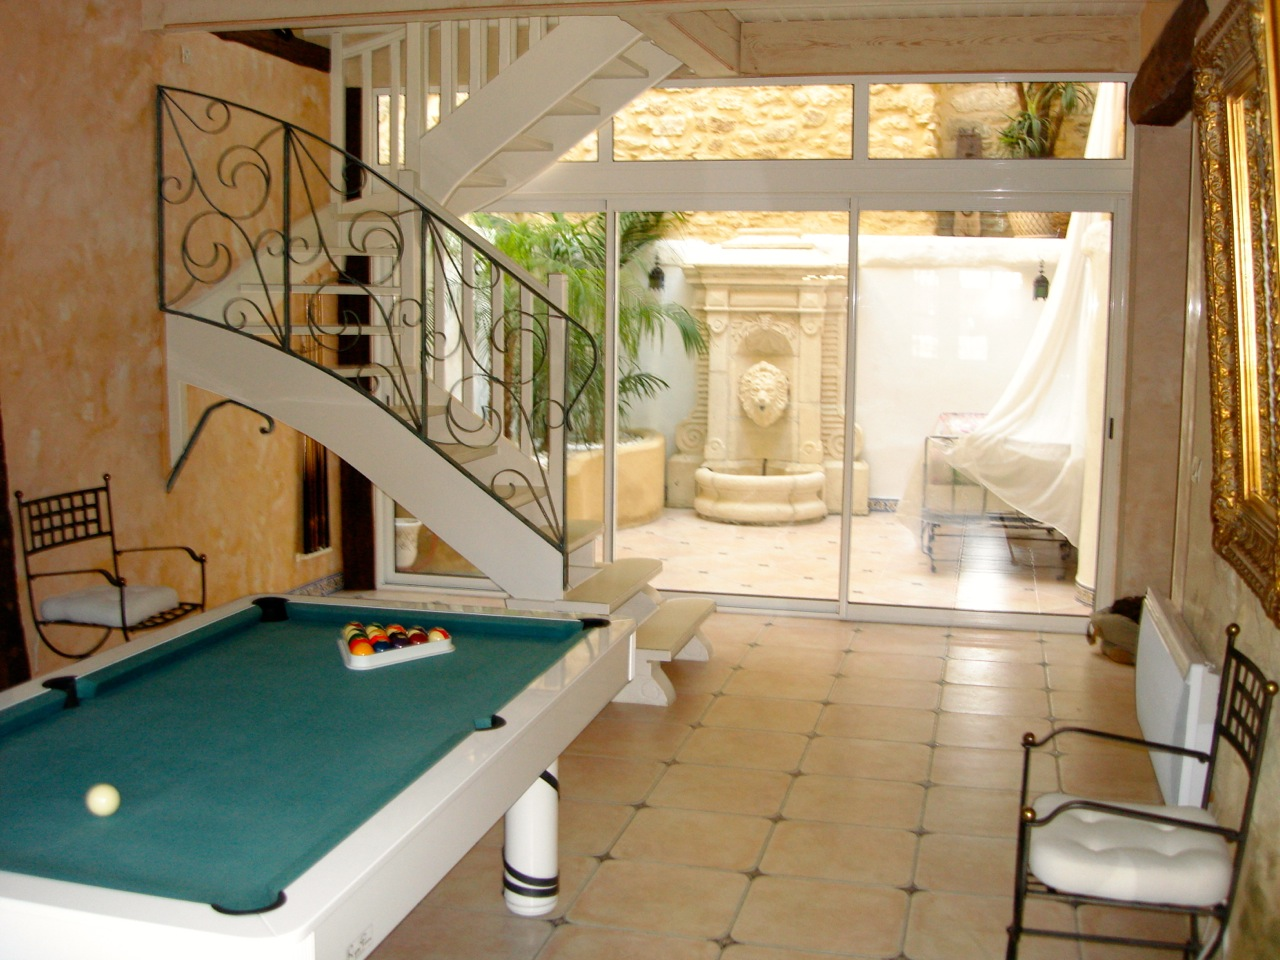 ROMANTIC STYLISH VILLA, LOVELY PRIVATE POOL, HEART VILLAGE, A STEP FROM BEACHES